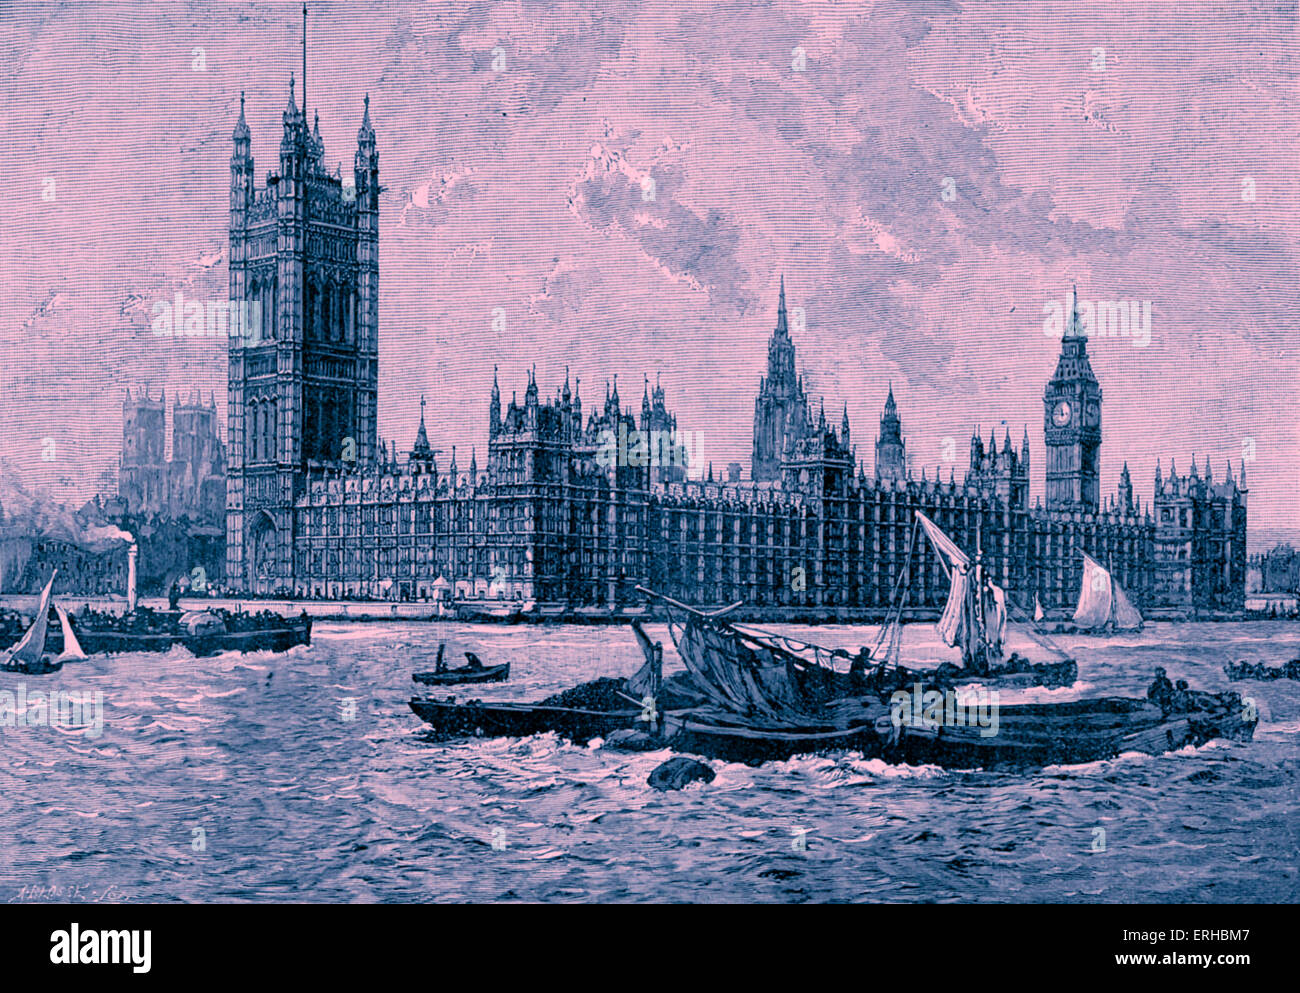 Houses of Parliament / Palace of Westminster, London. Designed by Charles Barry (23 May 1795 – 12 May 1860). After - Stock Image